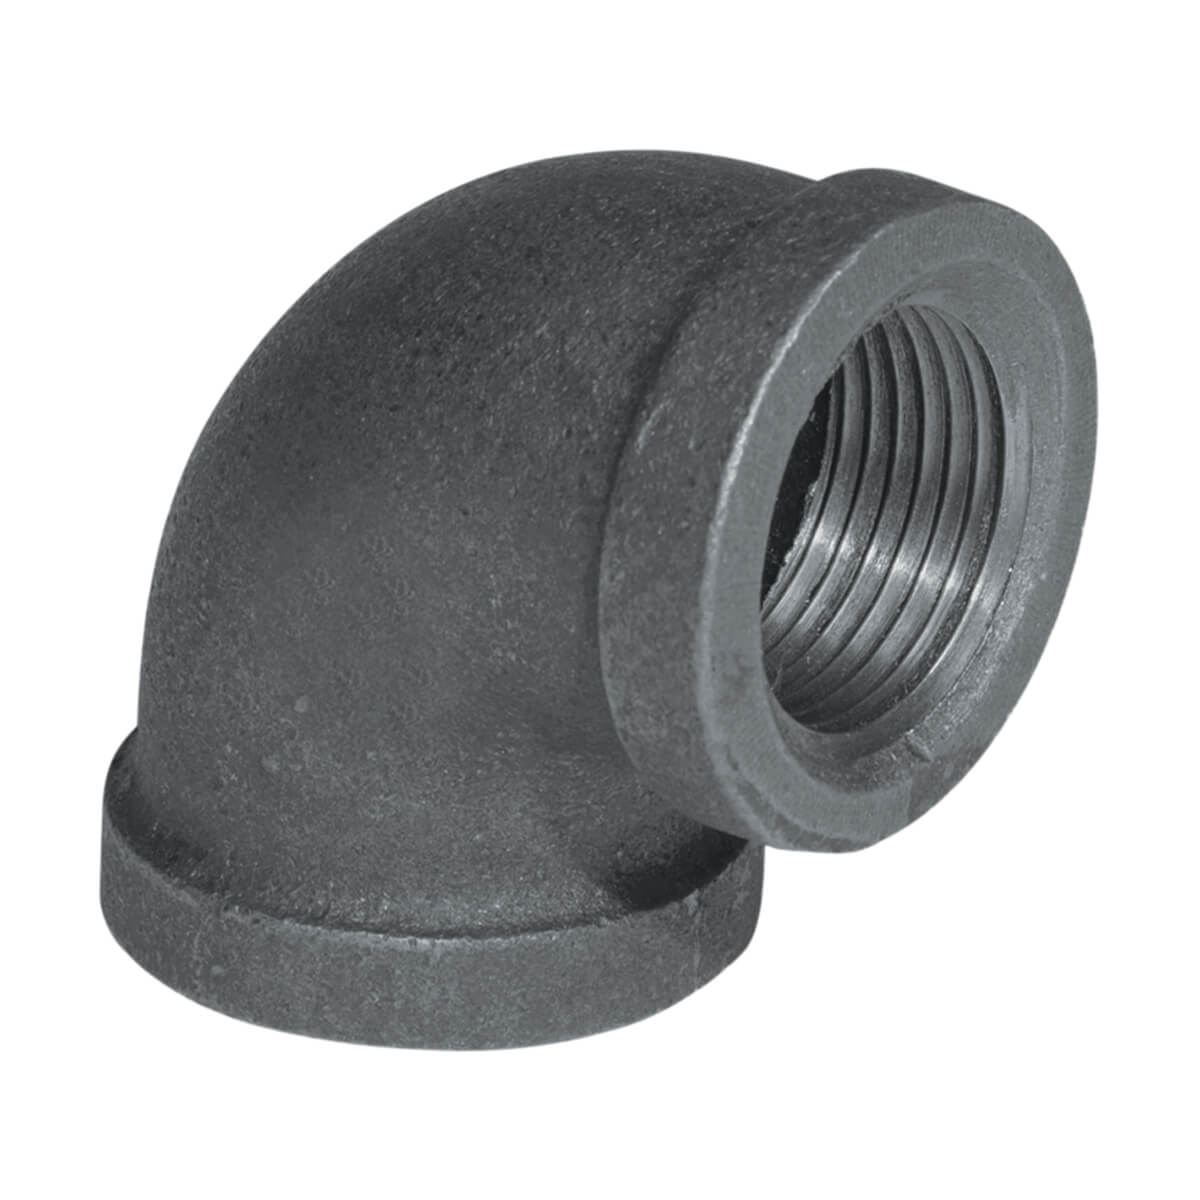 Fitting Black Iron 45° Elbow - 3/4-in